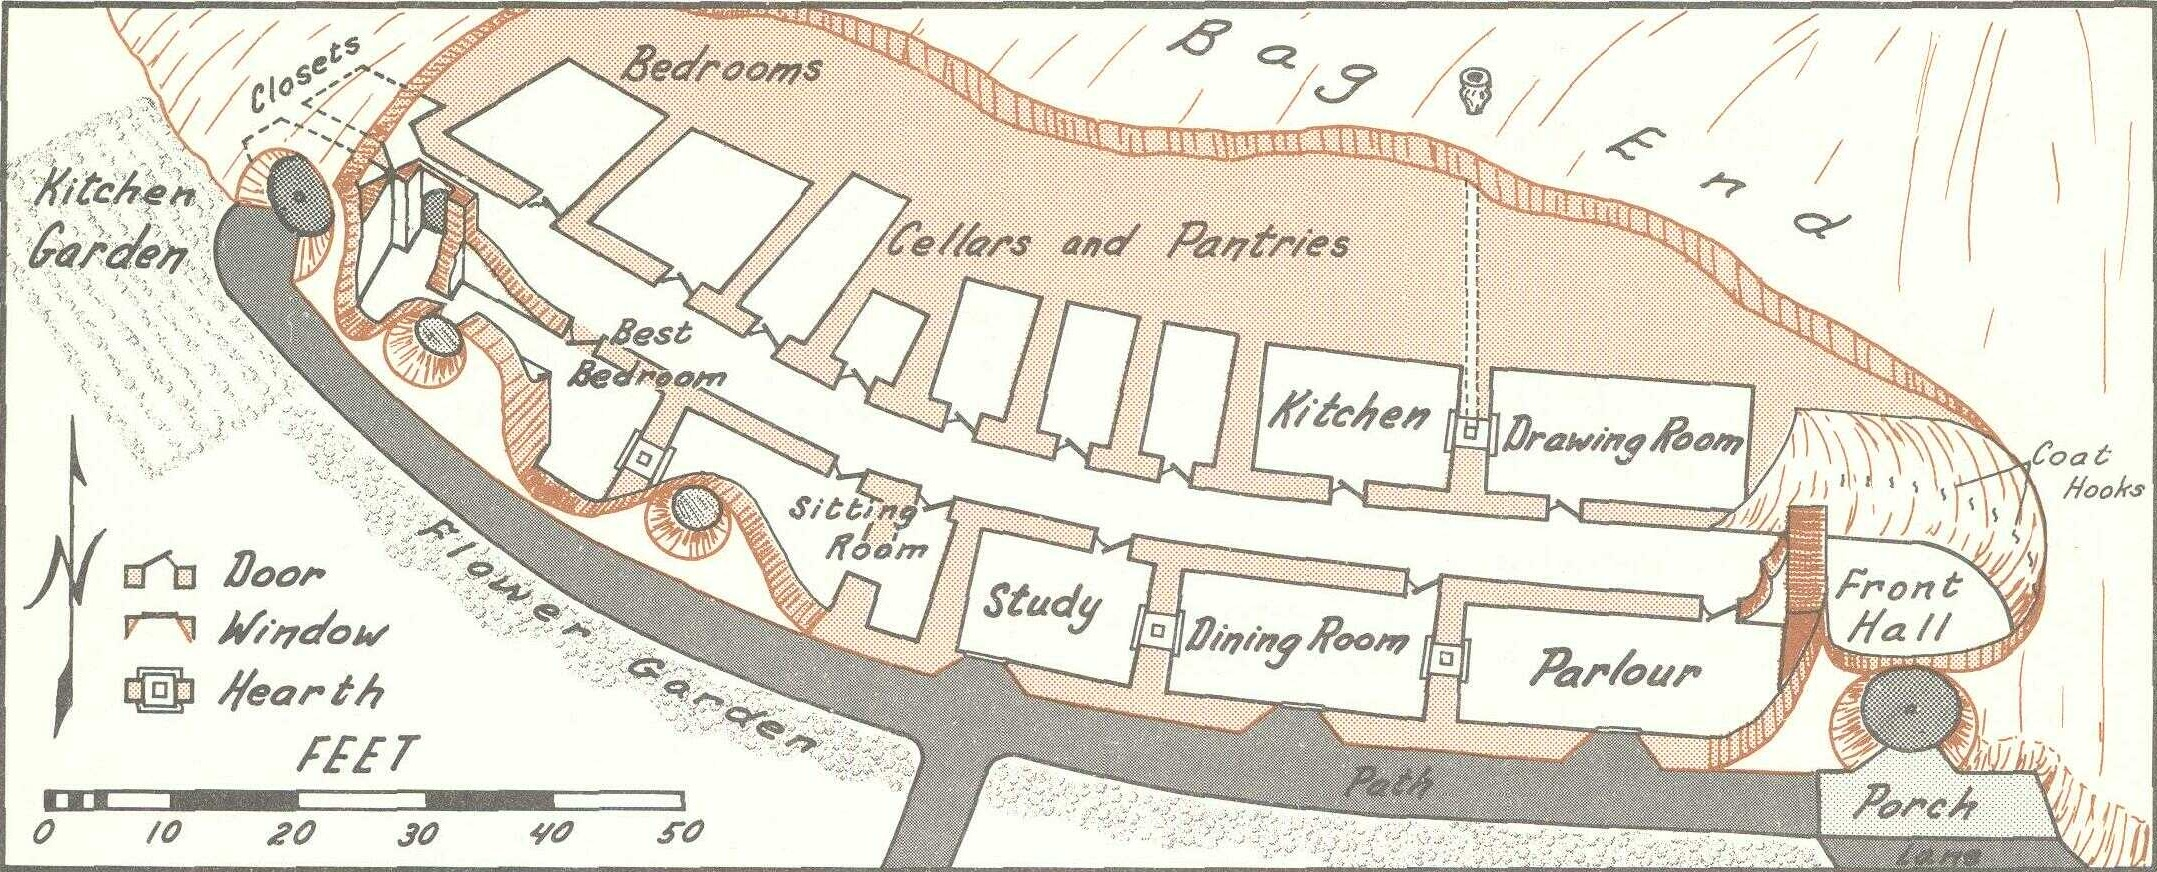 Etonnant Superb Hobbit House Plans With Stackwell Building Gallery Part 19